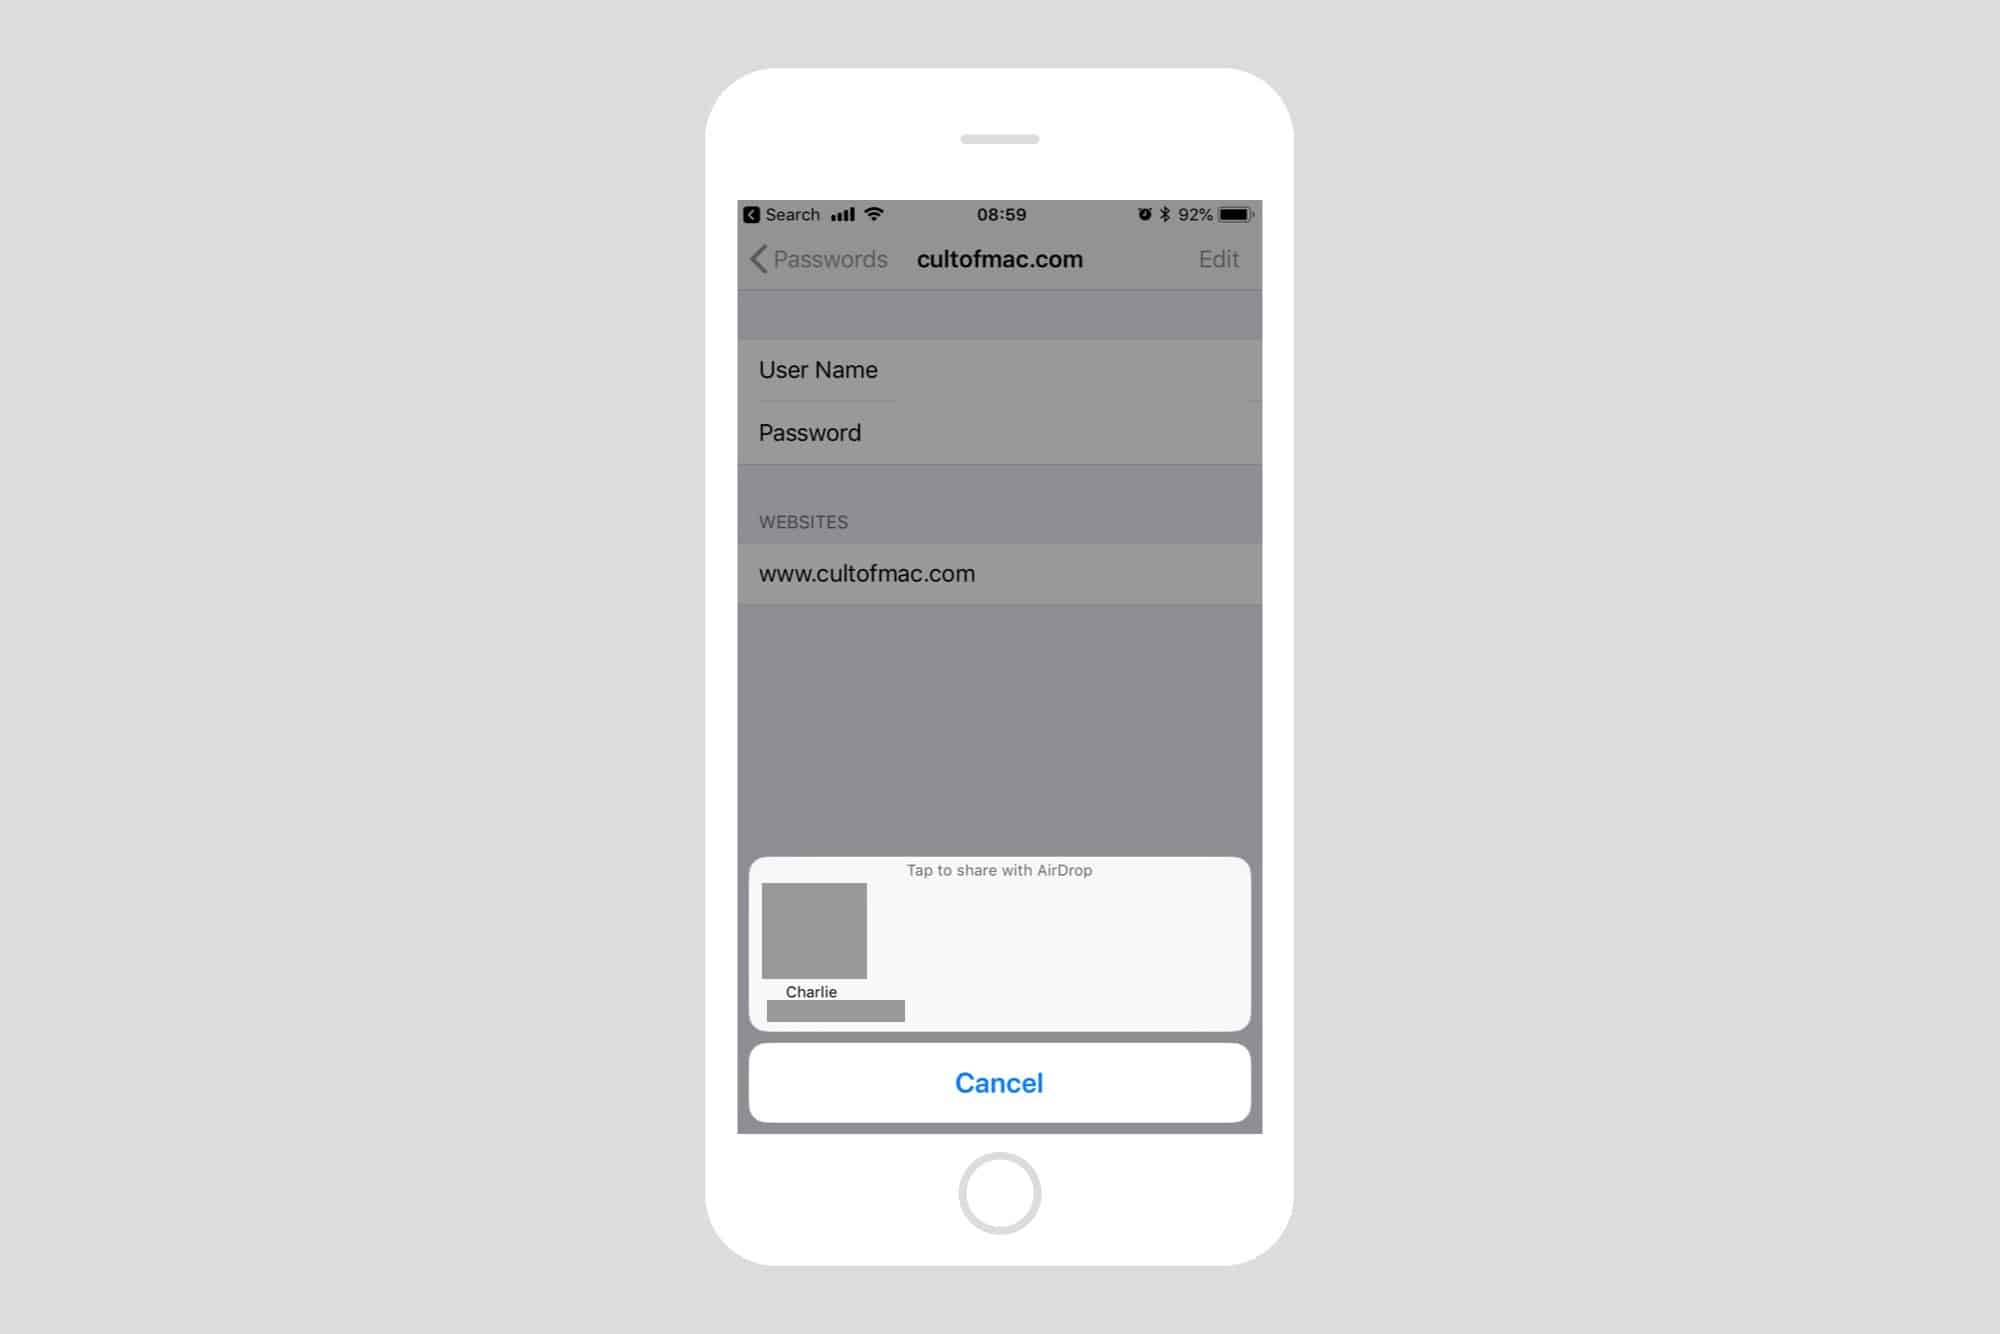 You can share a password via AirDrop from this screen in iOS 12.